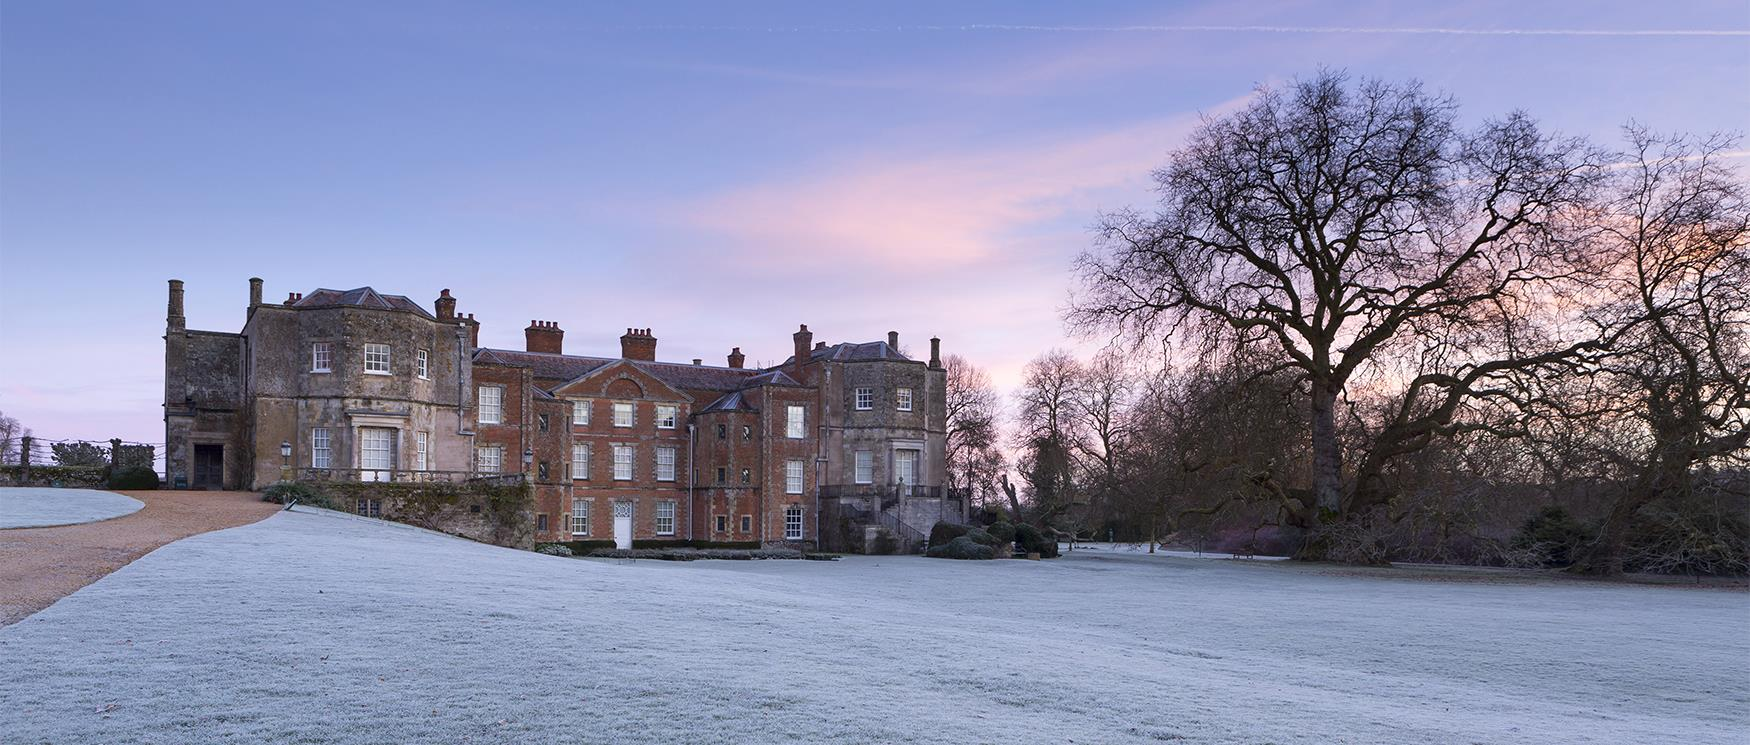 Stately Homes & Castles in Hampshire - Visit-Hampshire co uk